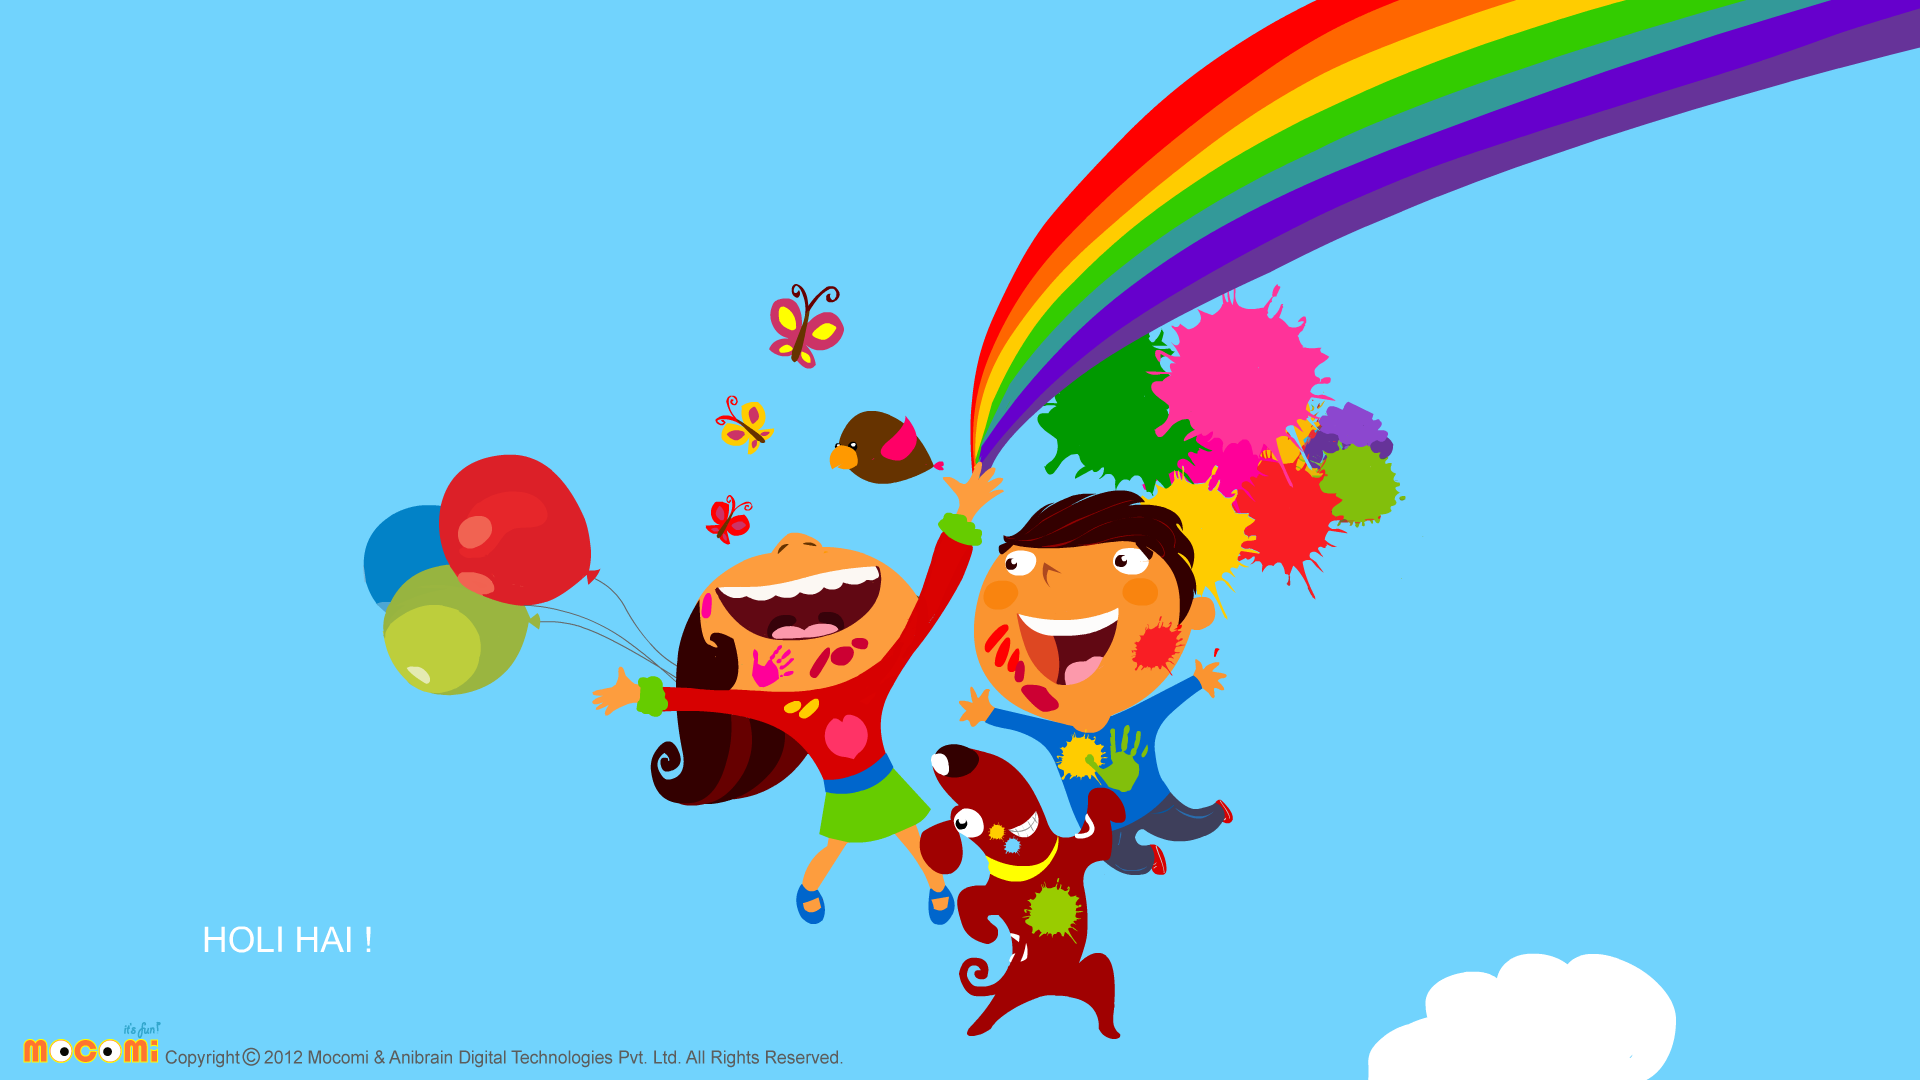 Holi Fun - Desktop Wallpapers For Kids